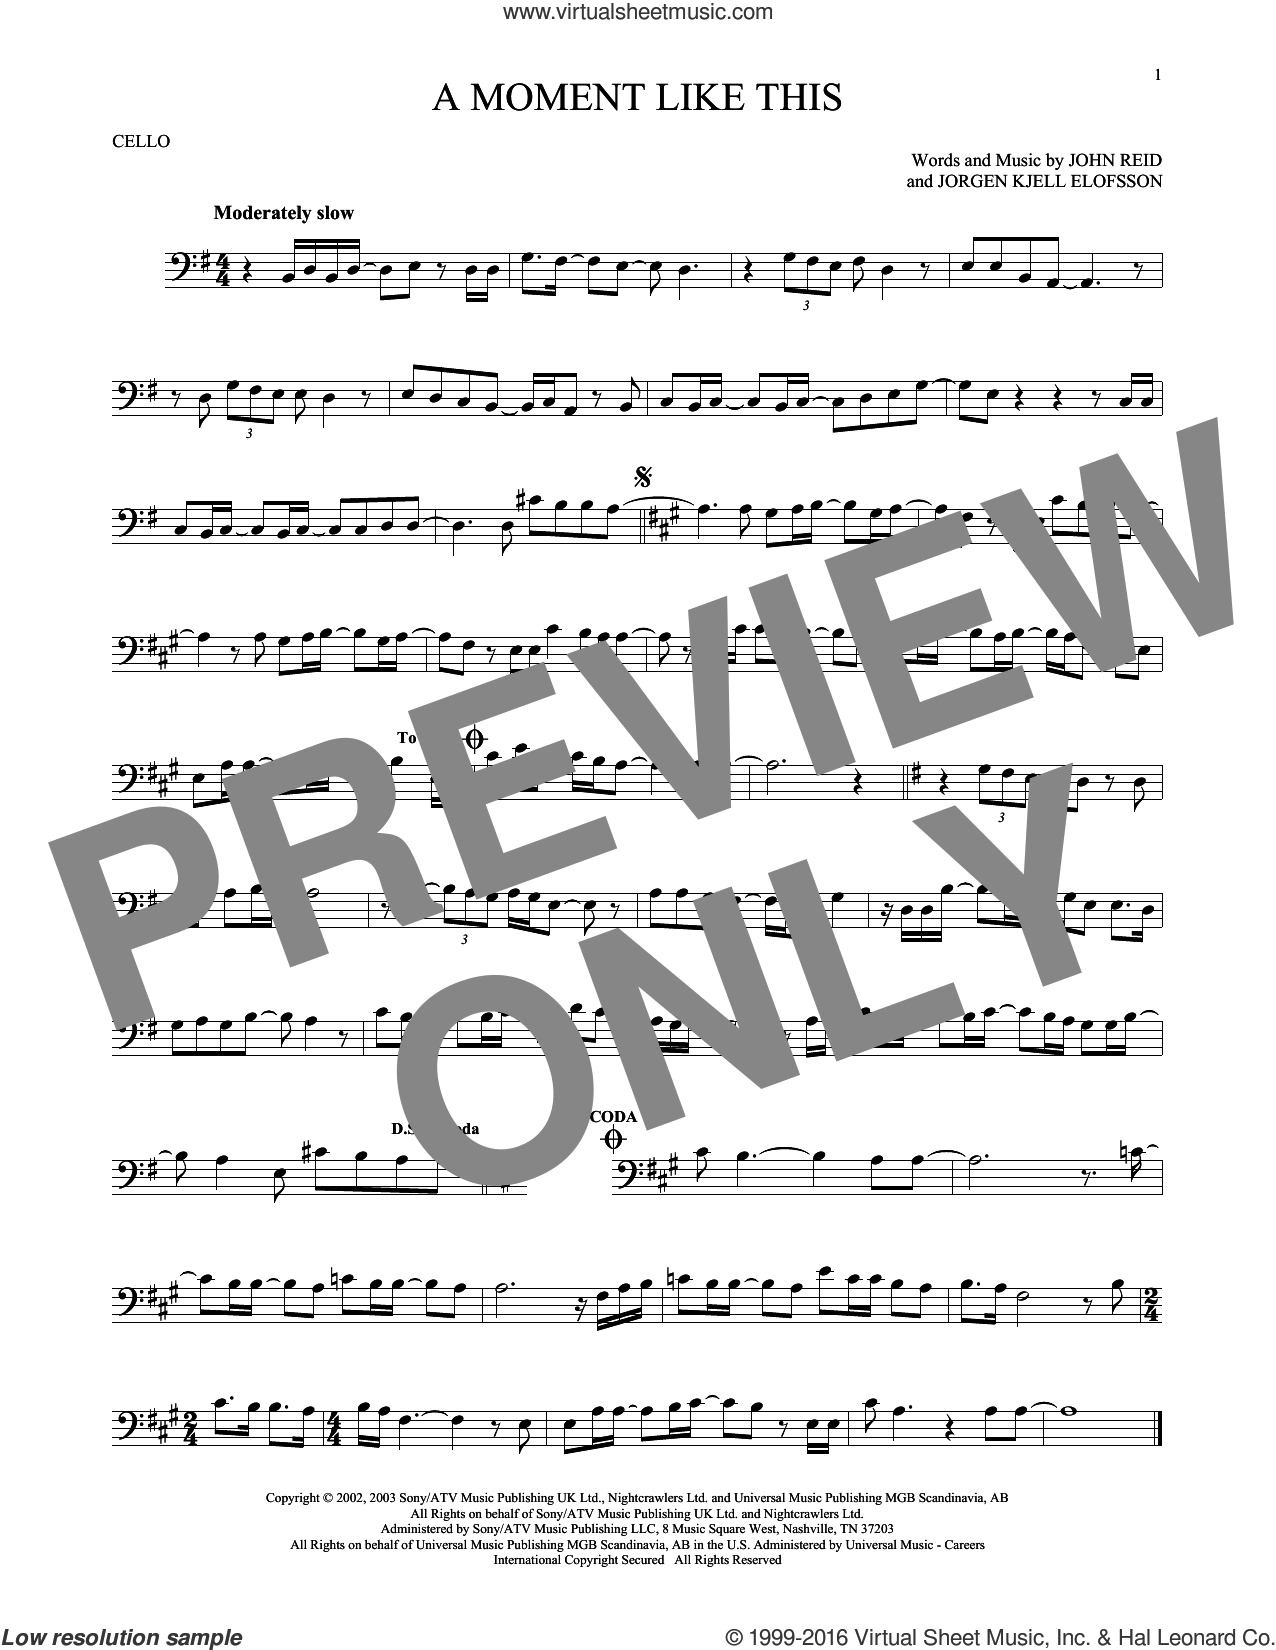 A Moment Like This sheet music for cello solo by Kelly Clarkson, John Reid and Jorgen Elofsson, intermediate skill level